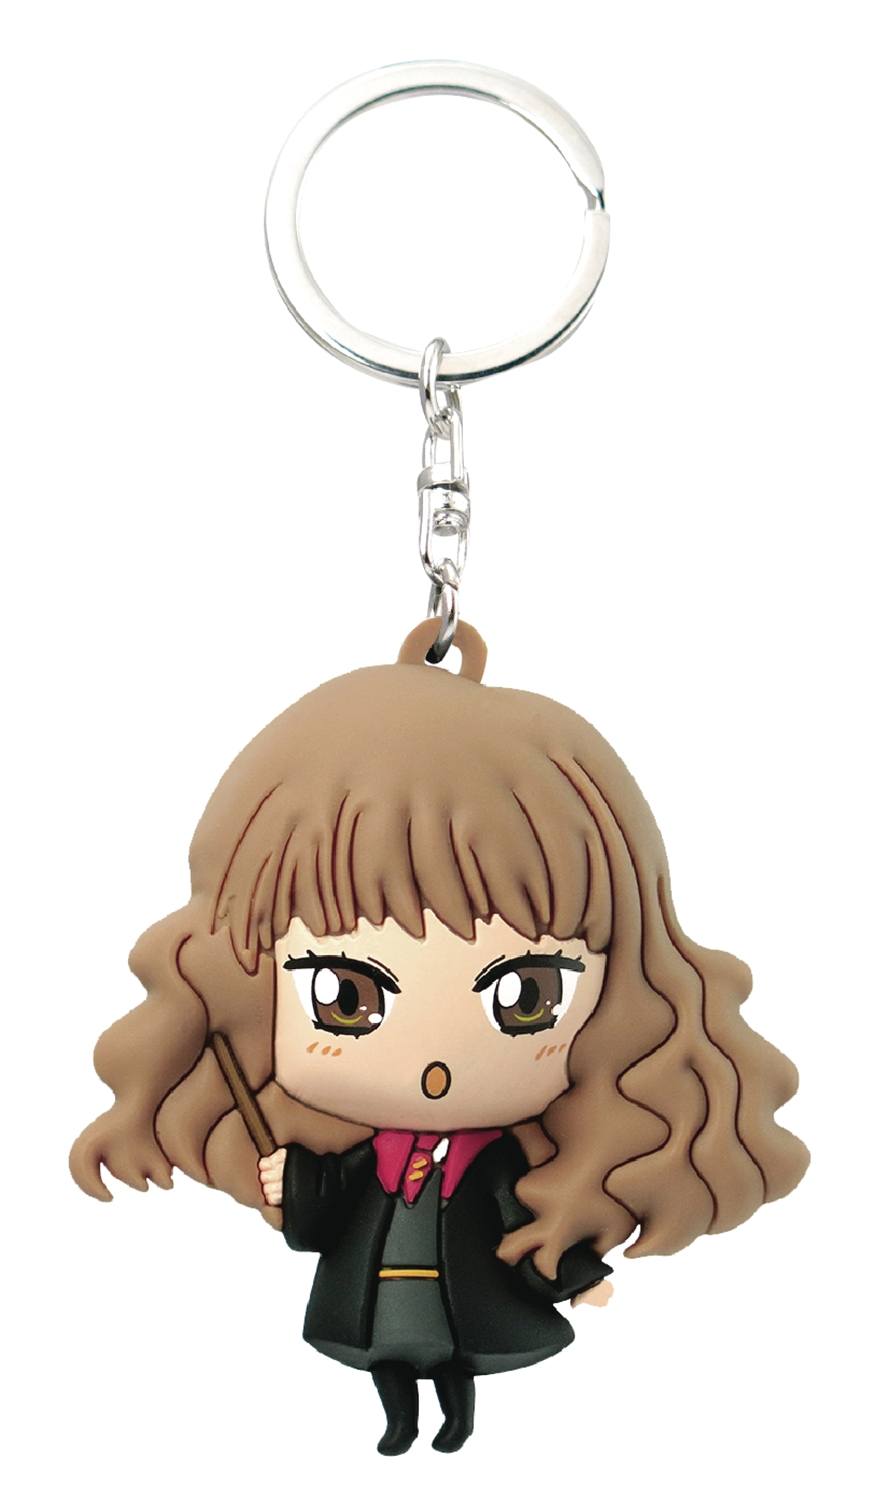 Harry Potter Kawaii Soft Touch PVC Figural Keyring: Hermione